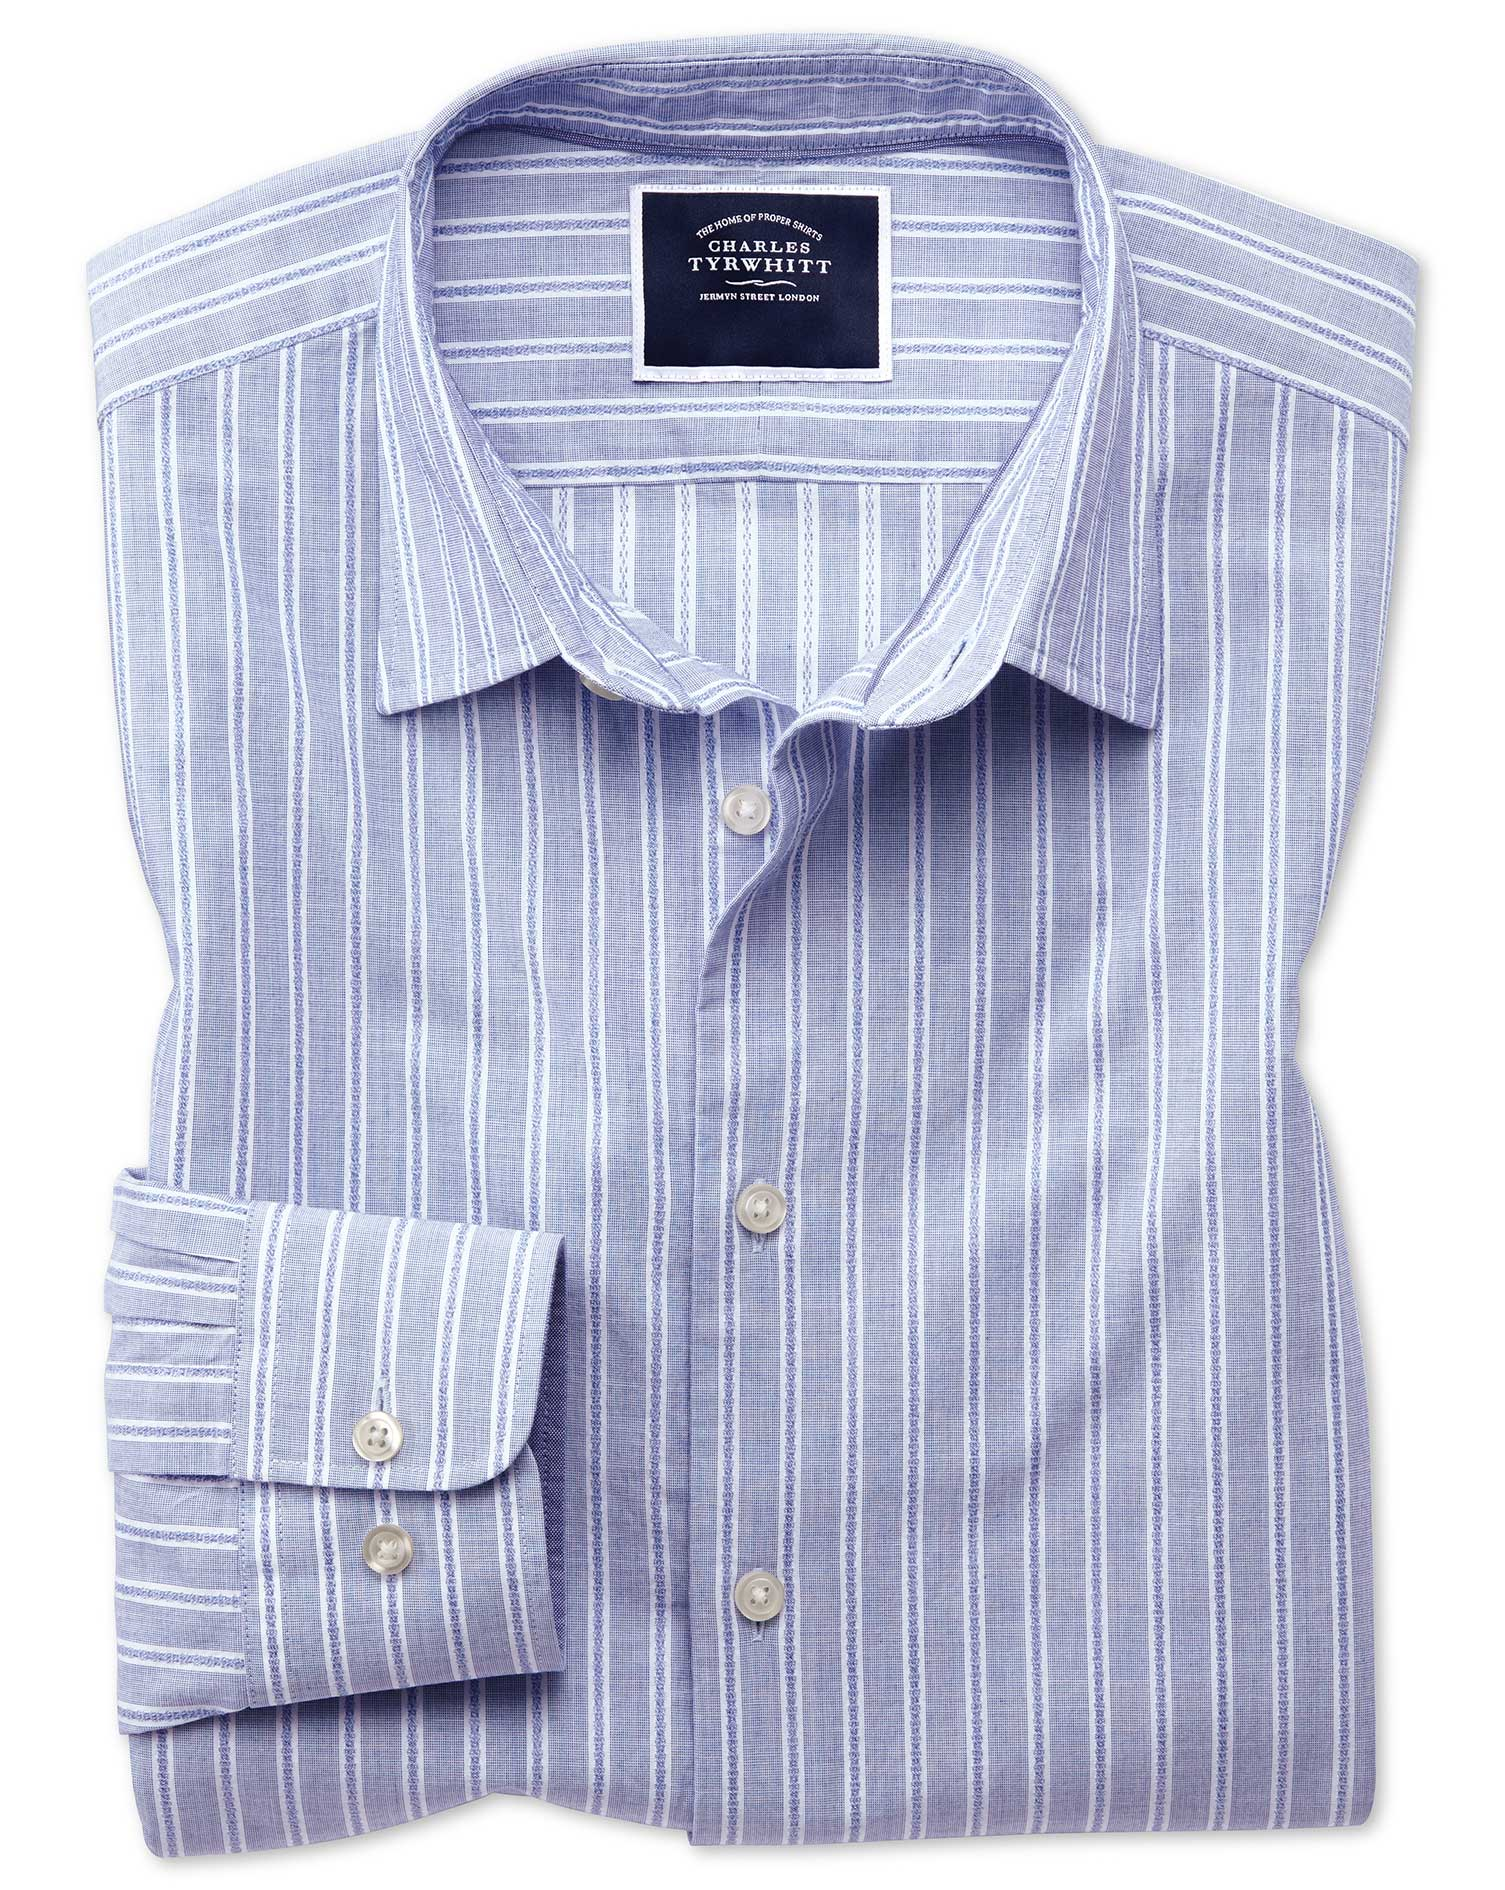 Slim Fit Blue and White Stripe Soft Texture Cotton Shirt Single Cuff Size Small by Charles Tyrwhitt